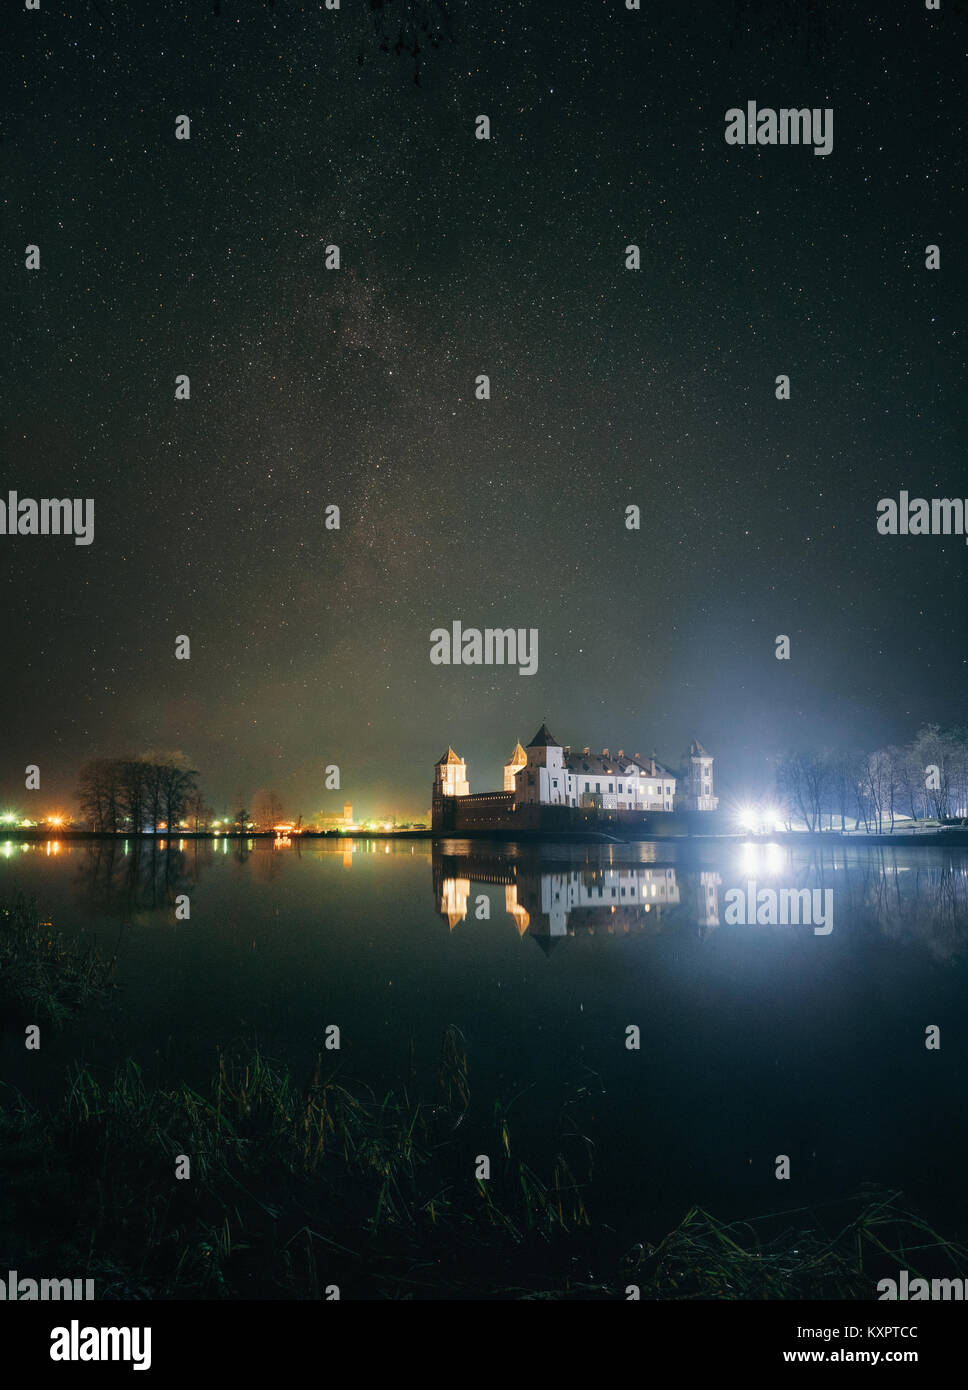 Scenic view of Mir Castle Complex in night with starry sky and glow reflexion on lake. Landmark in Belarus - Stock Image